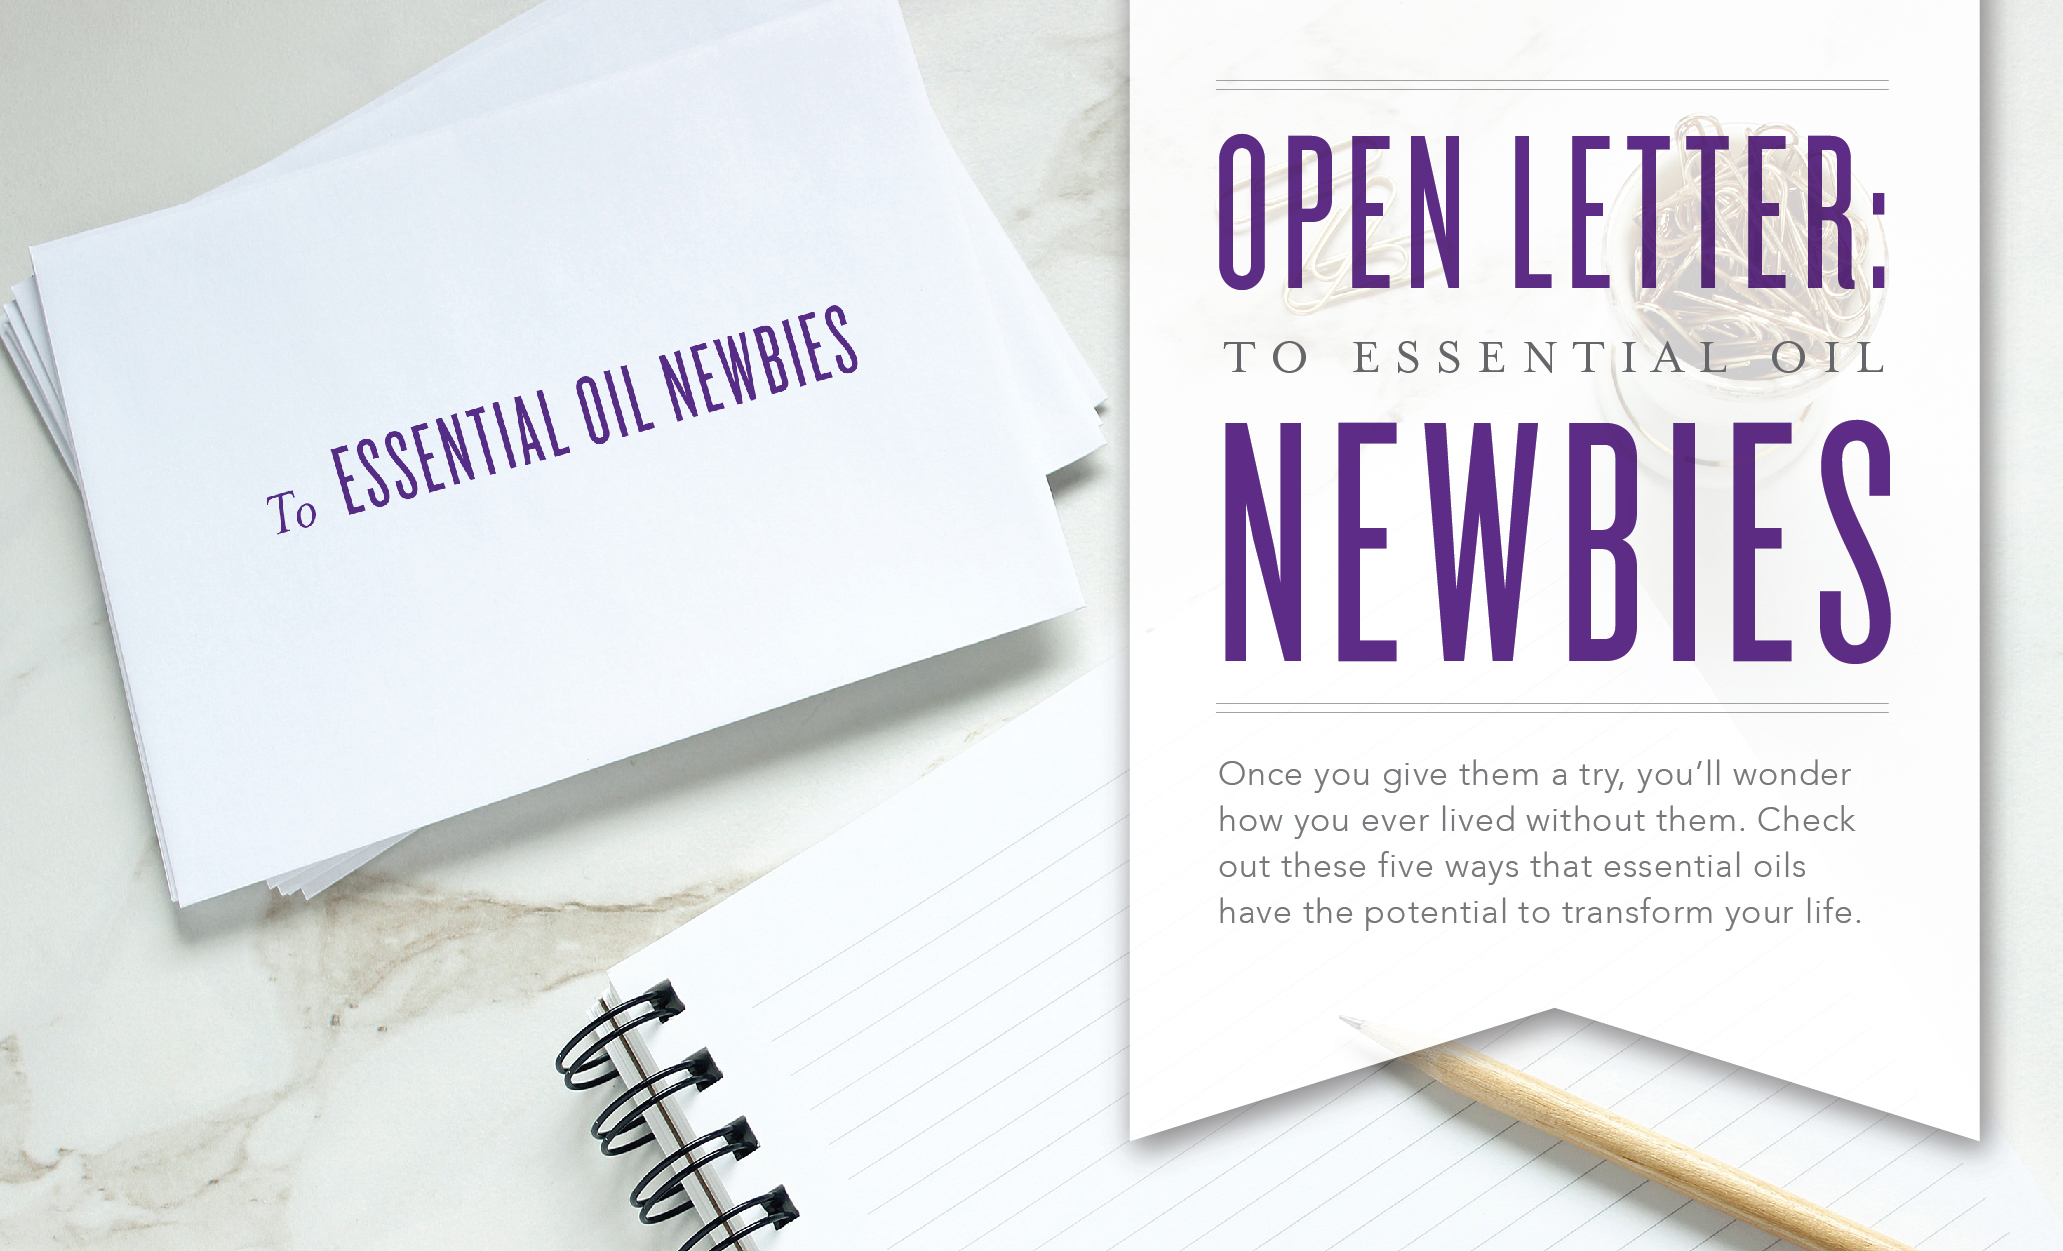 Open letter to essential oil newbies